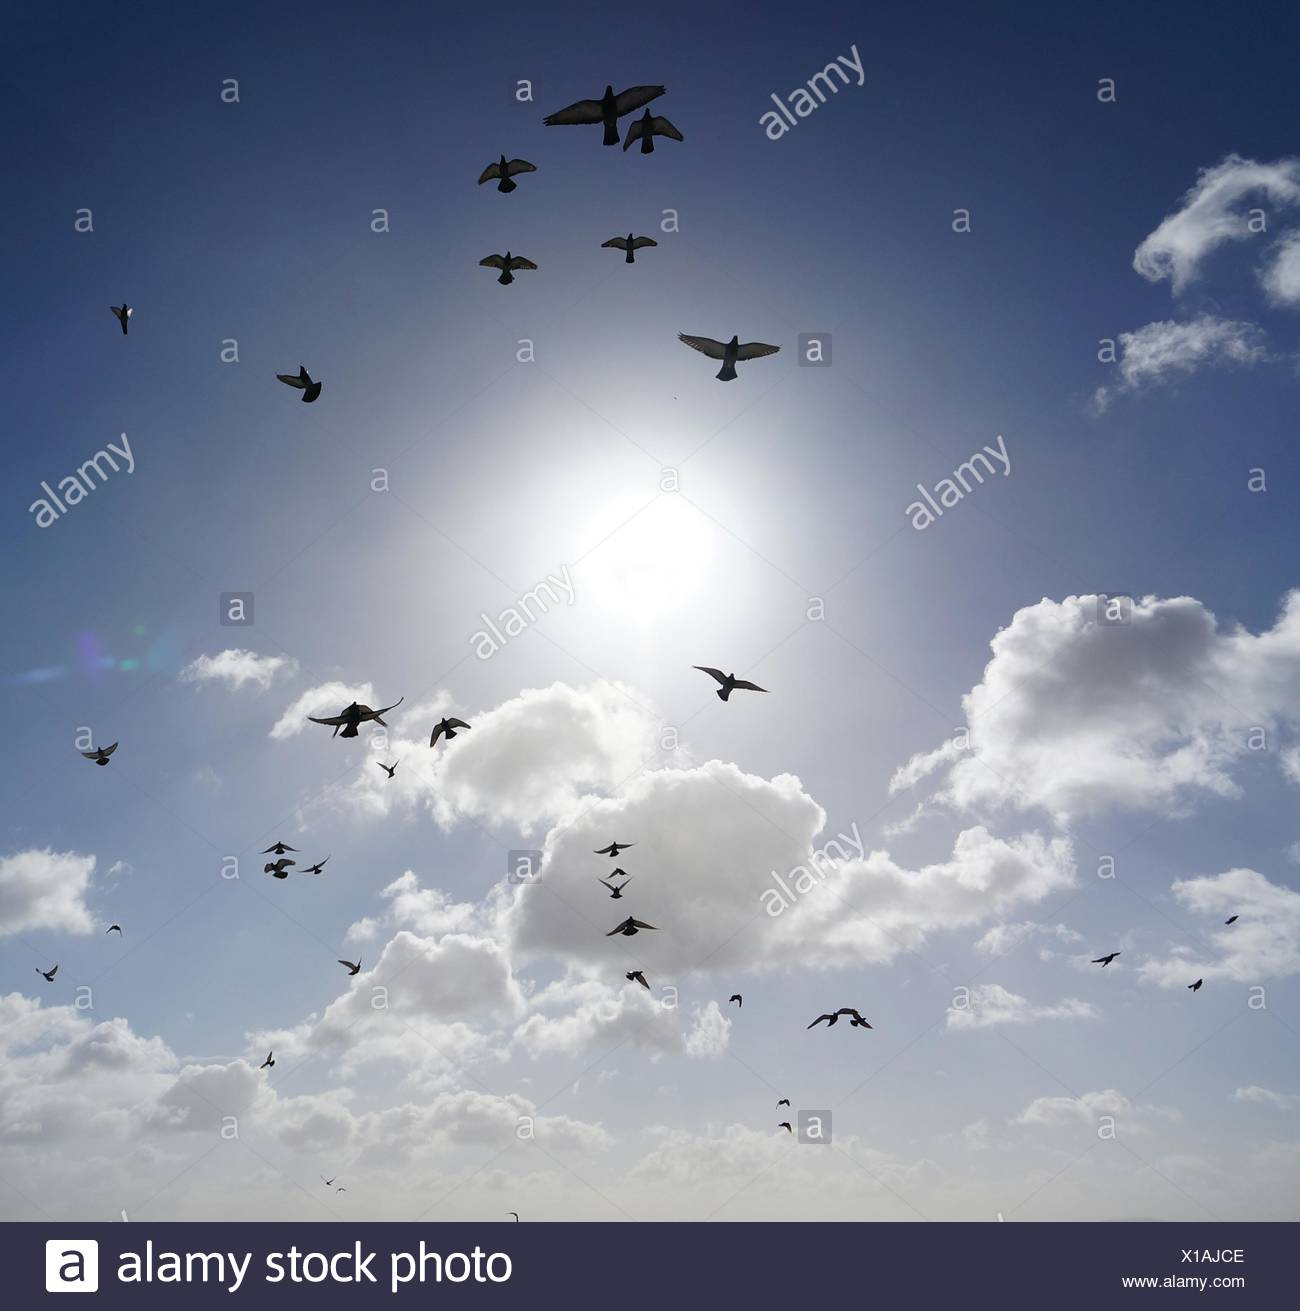 Low Angle View Of Birds Flying Against Sky - Stock Image